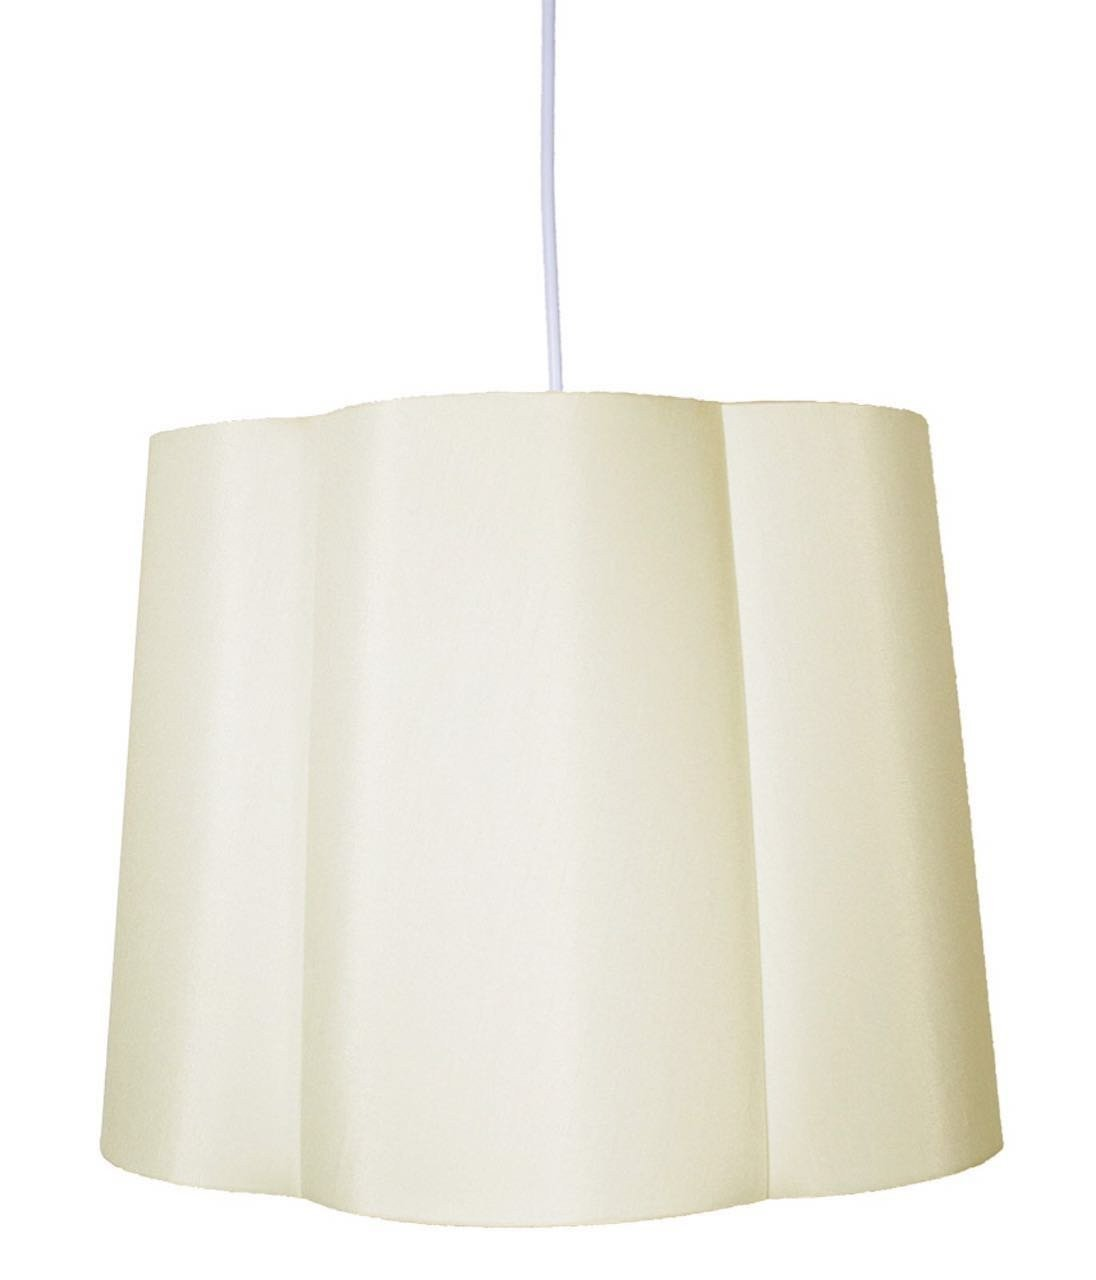 Imani Shade Pendant with Hanging Light Kit, 16-inch Diameter, 12-inch Height